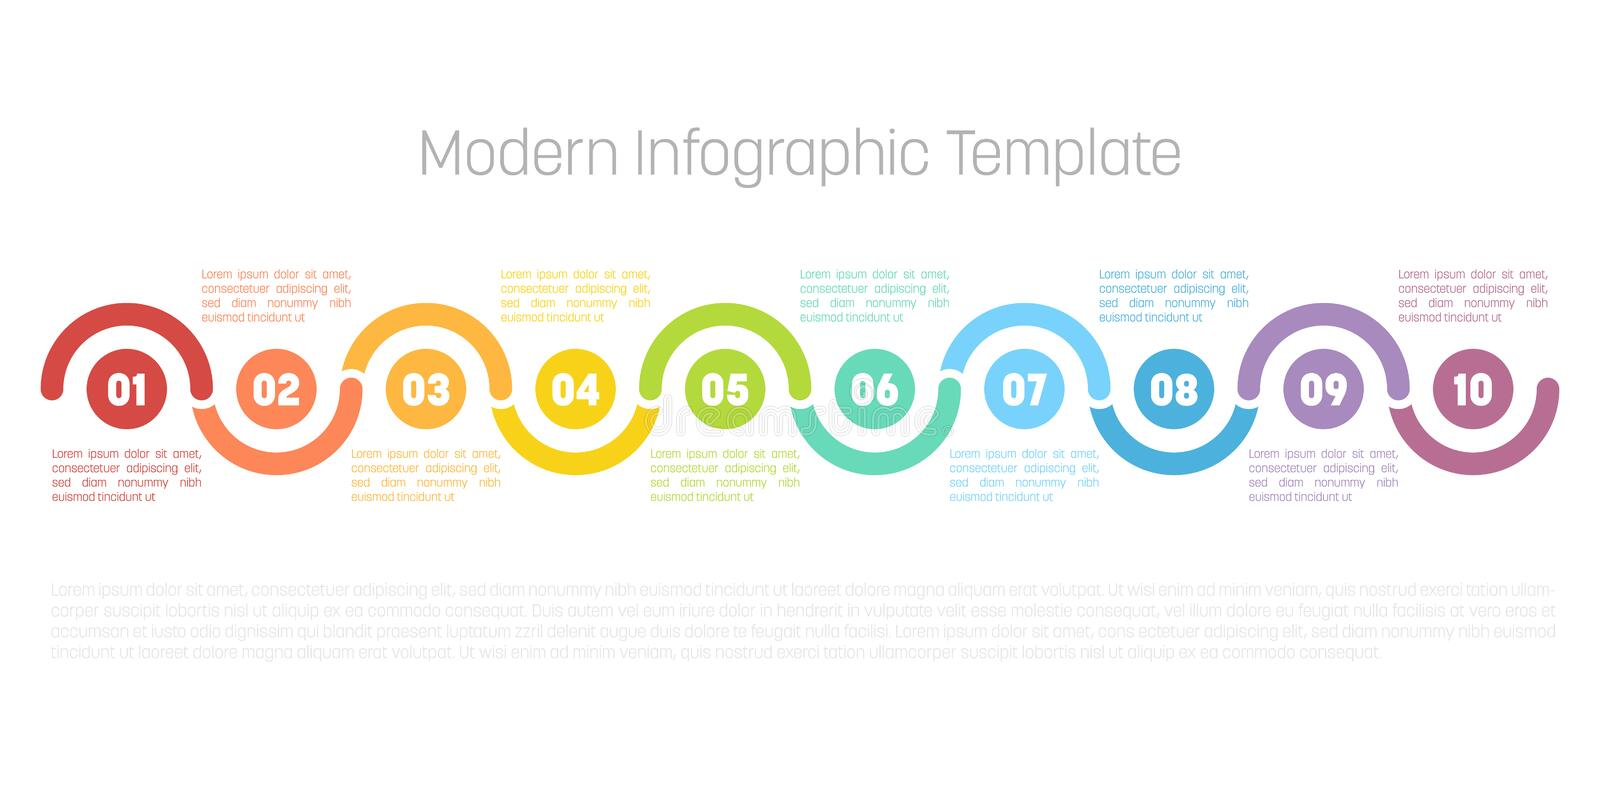 10 step process modern infographic diagram. Graph template of circles and waves. Business concept of 10 steps or options vector illustration